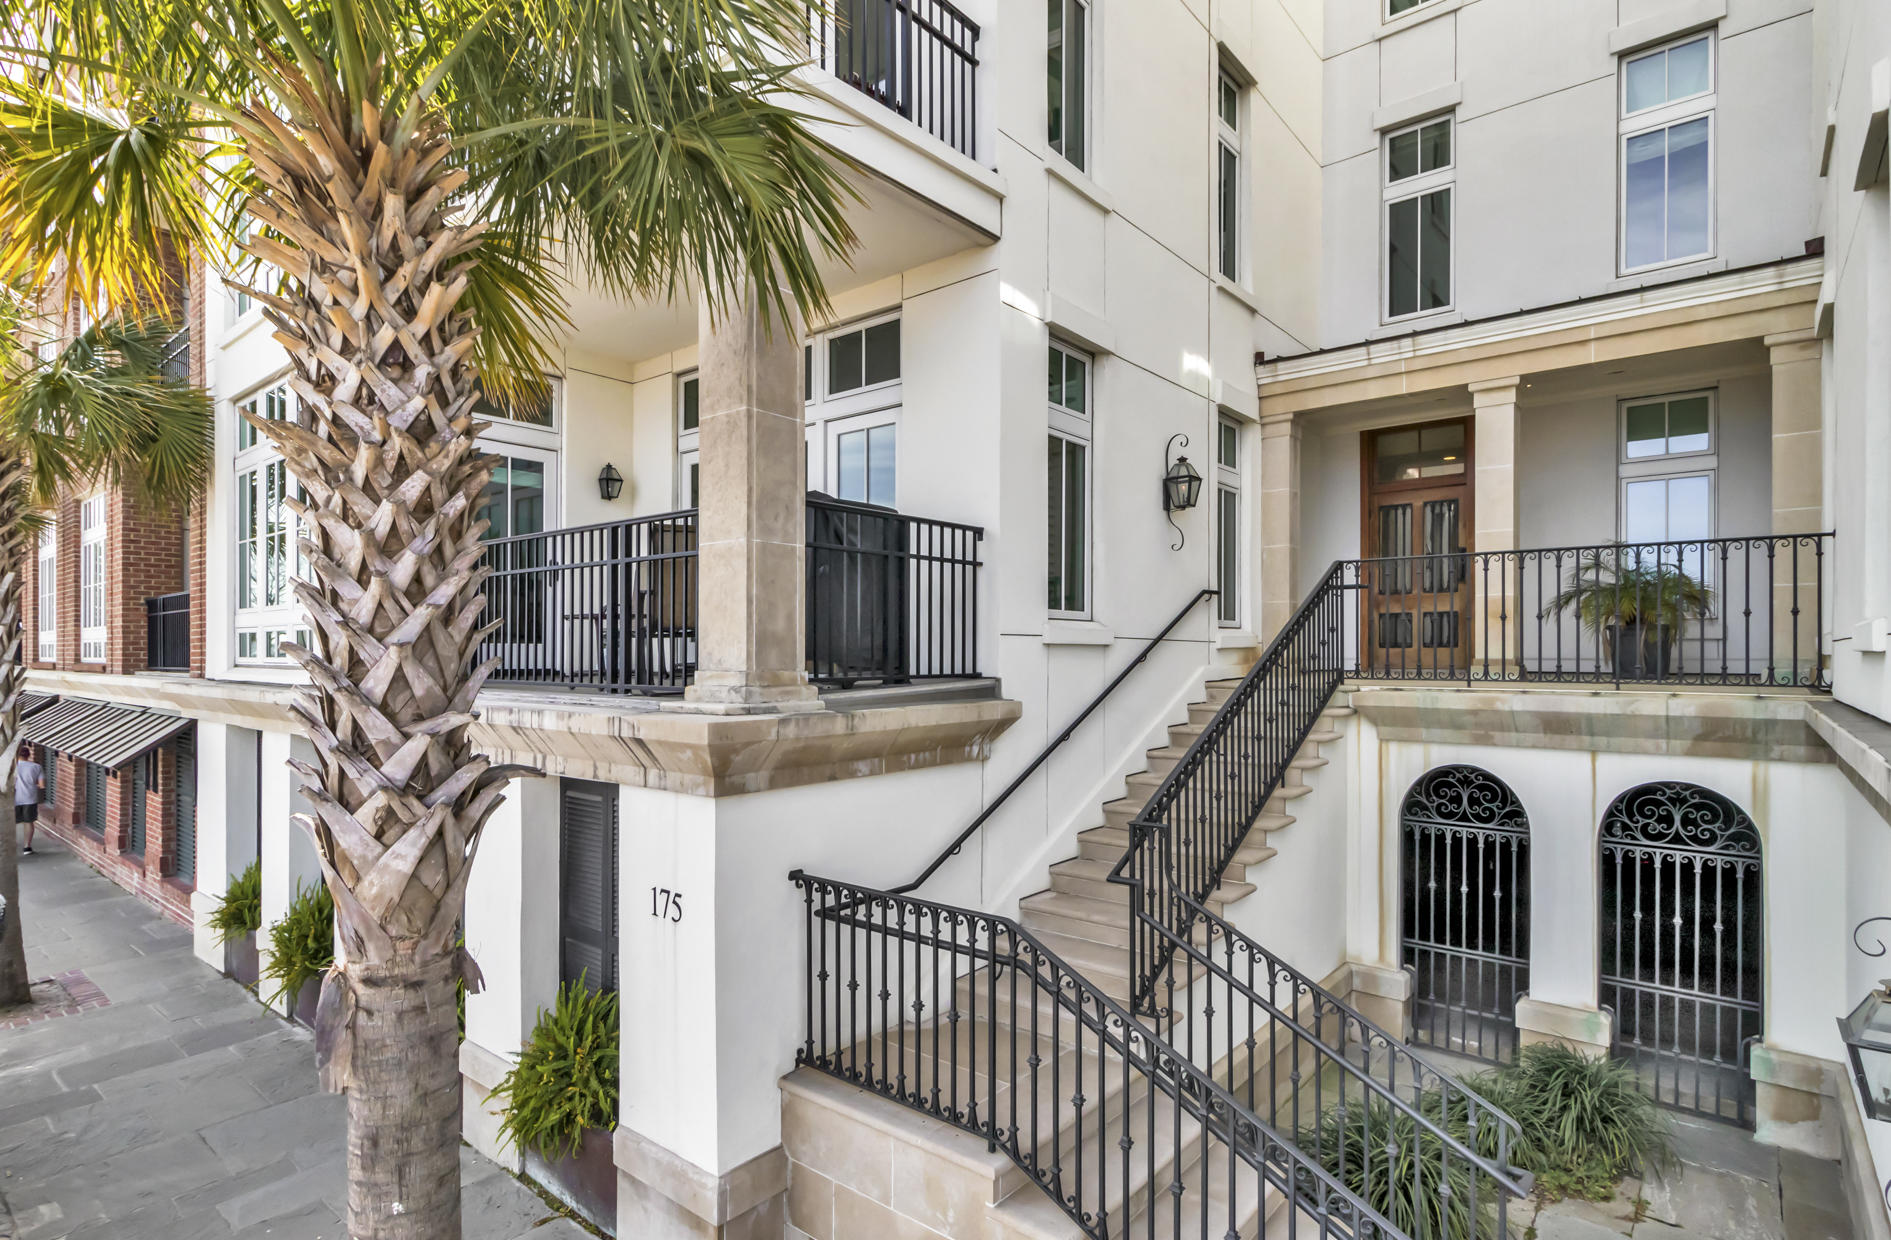 French Quarter Homes For Sale - 175 Concord, Charleston, SC - 34